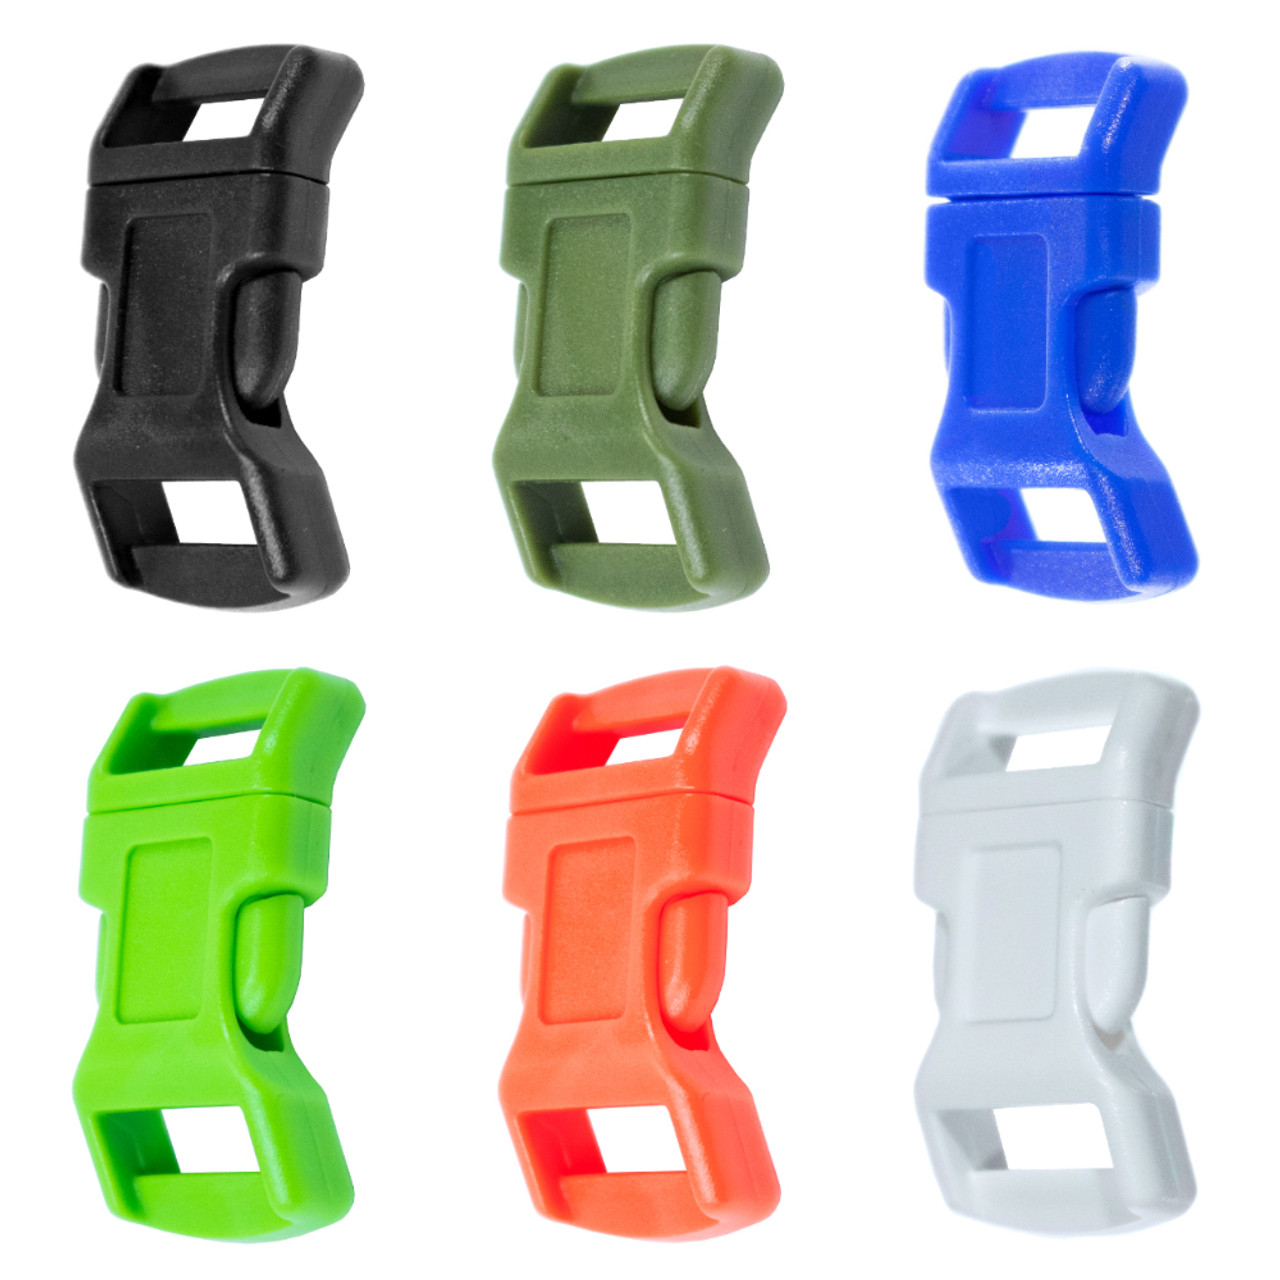 10-1//2 Inch Blue Economy Contoured Side Release Plastic Buckles